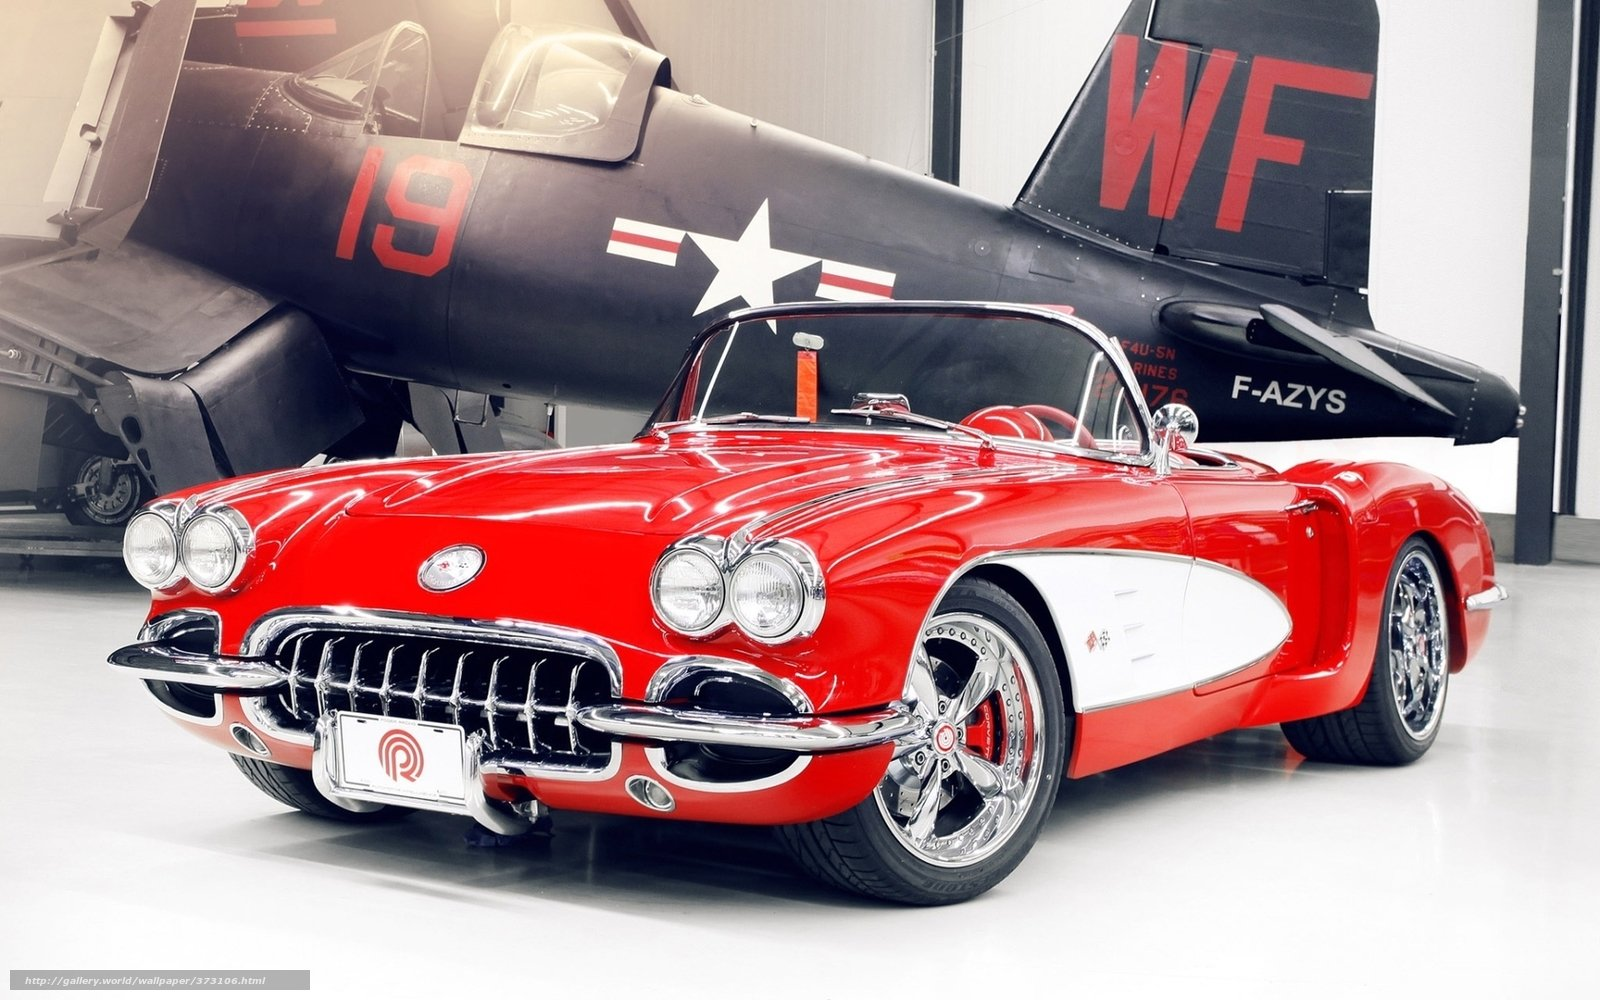 Classic Corvette Wallpaper Wallpapersafari